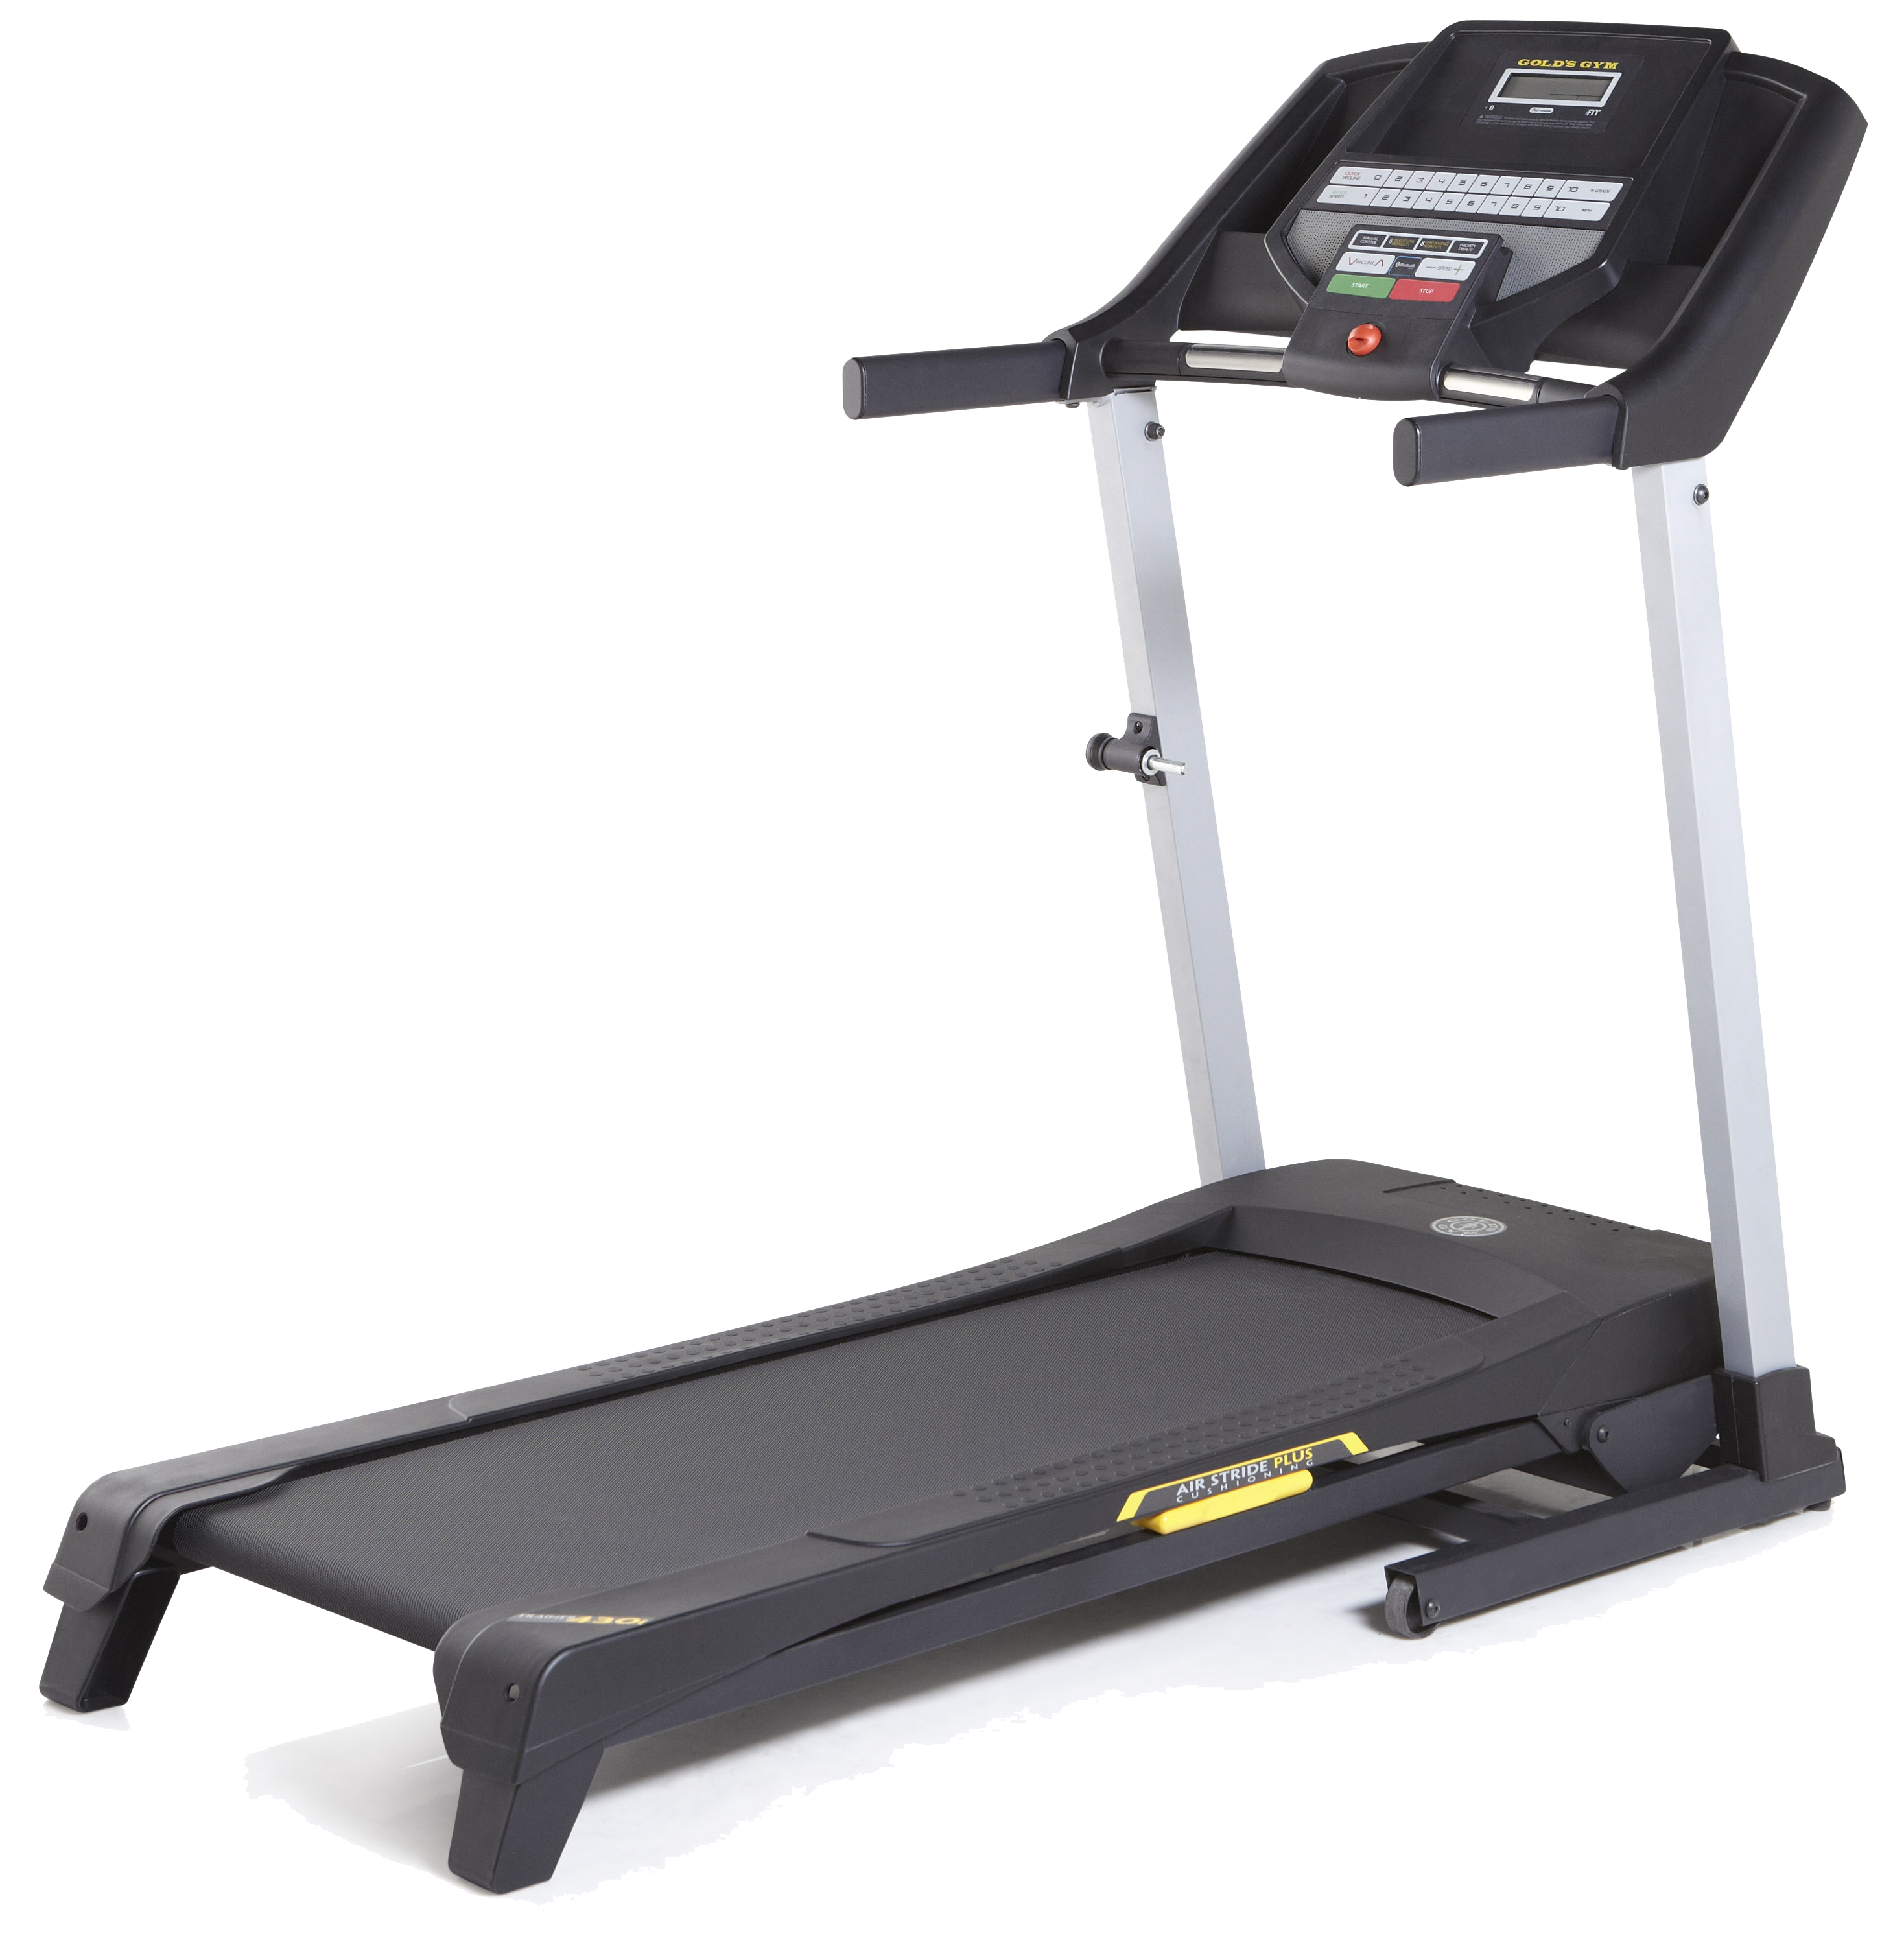 Support golds gym . Exercise clipart treadmill